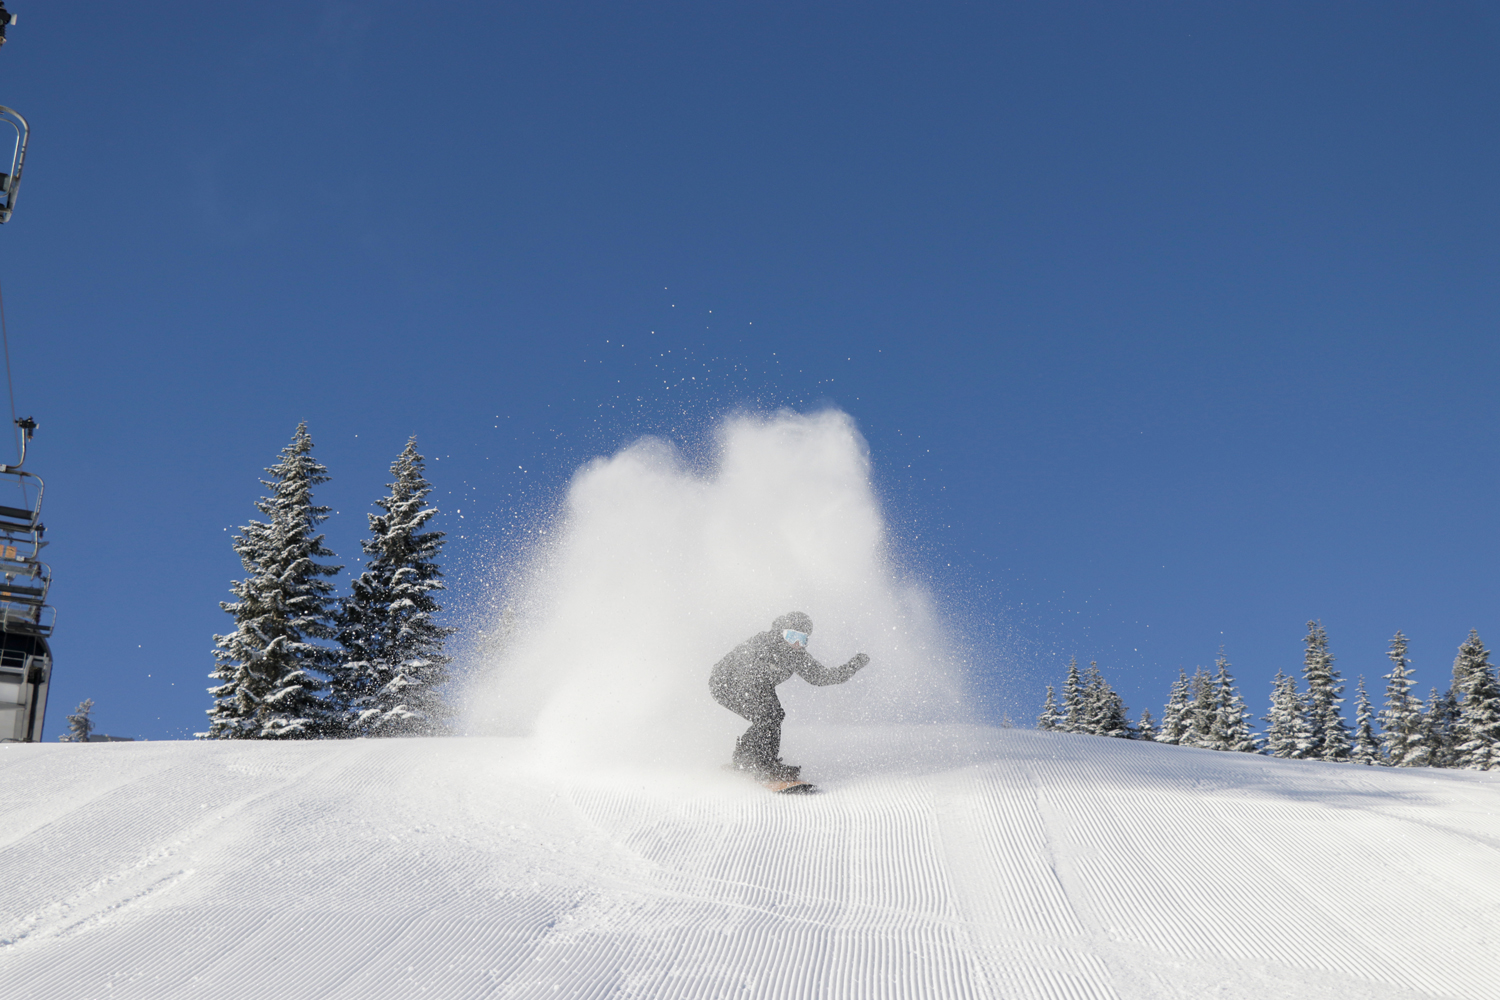 Jeff Caven ripping through his own cloud on a cold morning in February.